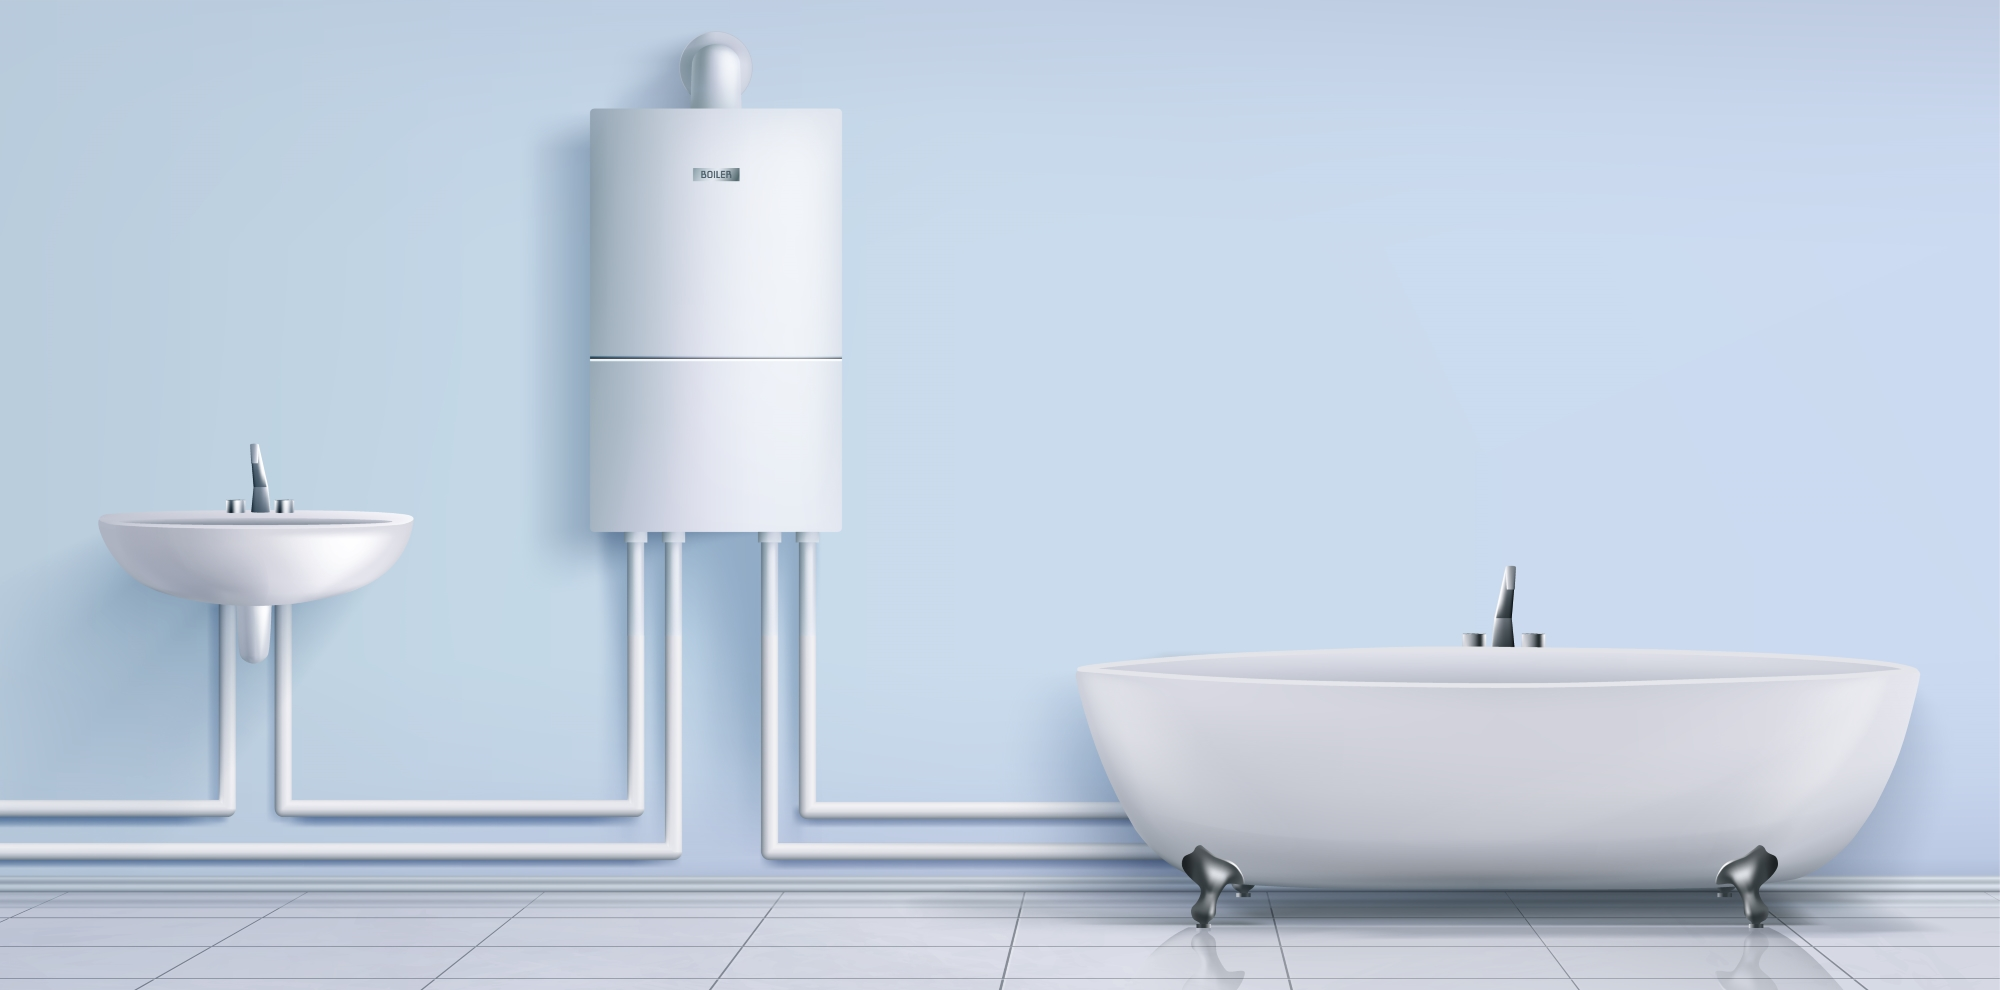 Hot Water Tank and Water Heater Service in Edmonton